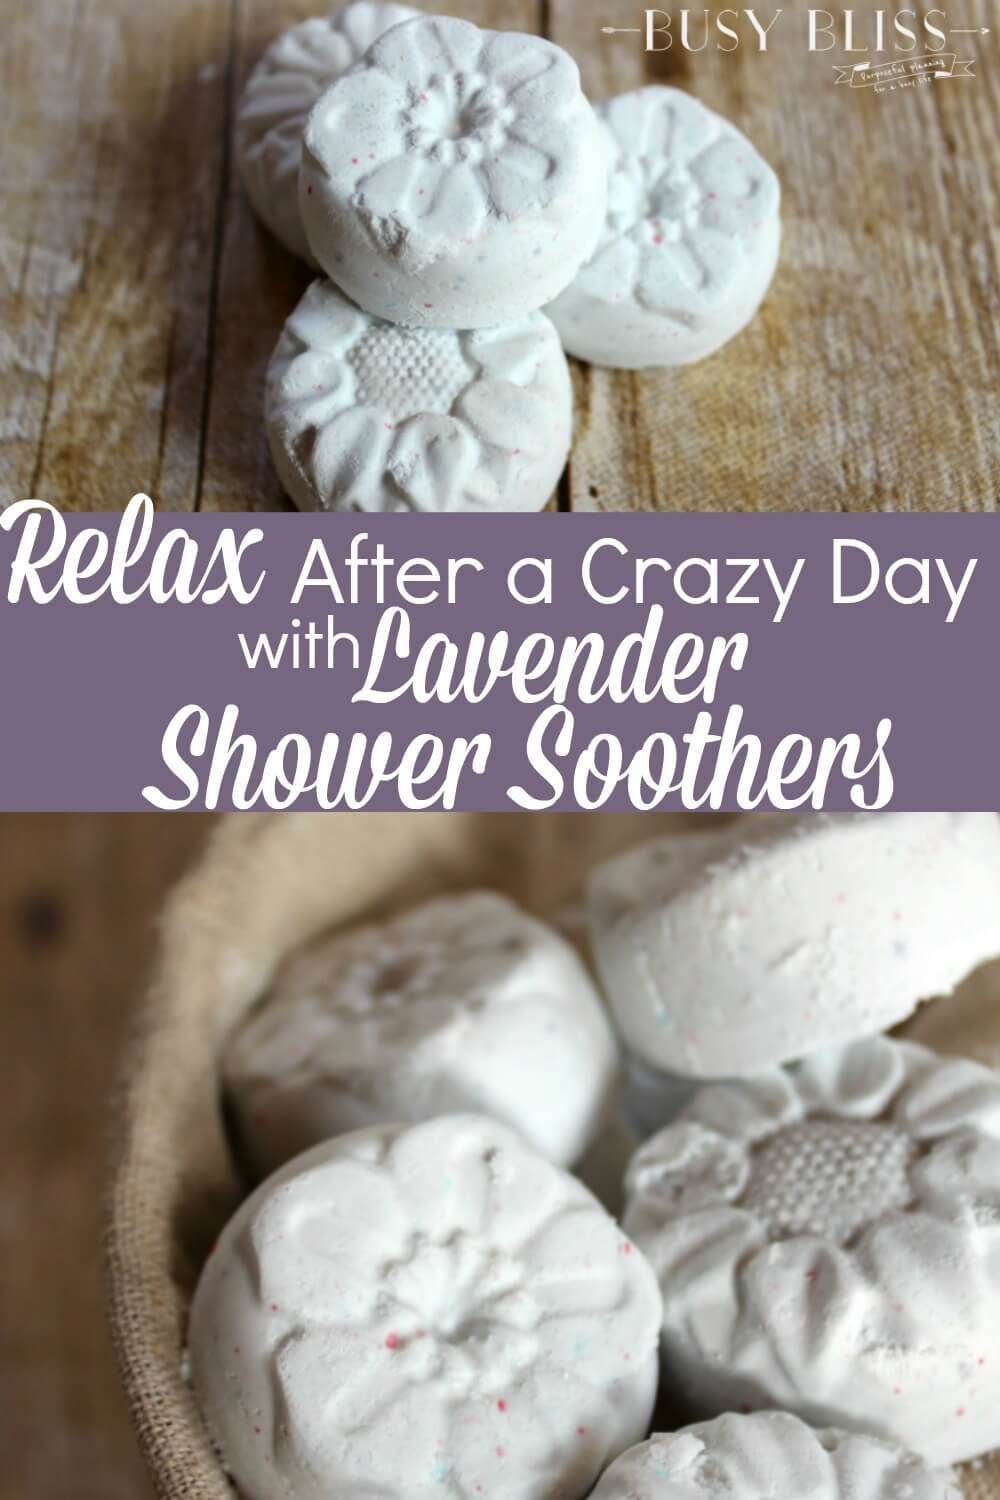 Relax After a Crazy Day with Lavender Shower Soothers